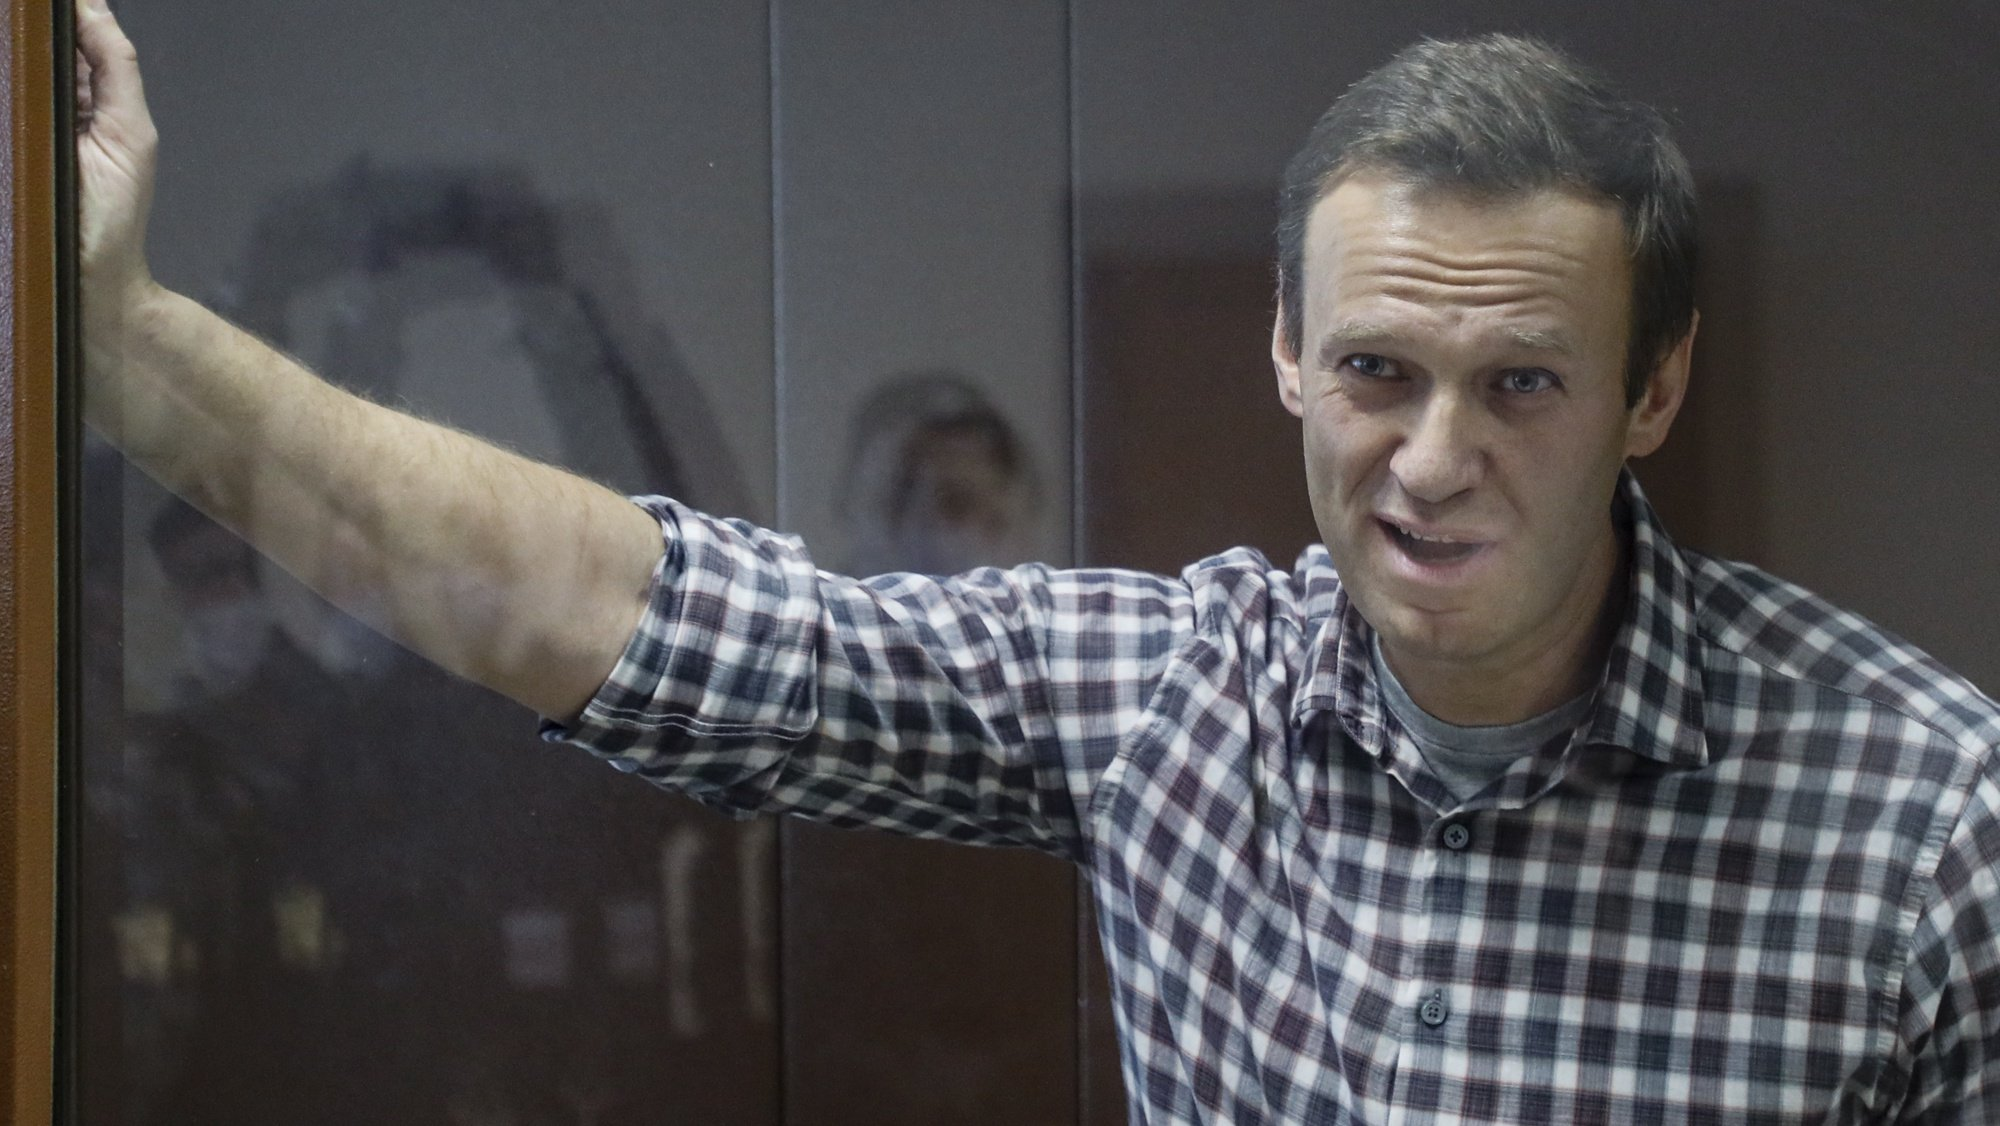 epa09025250 Russian opposition leader Alexei Navalny stands inside a glass cage prior to a hearing at the Babushkinsky District Court in Moscow, Russia, 20 February 2021. The Moscow City court will hold a visiting session at the Babushkinsky District Court Building to consider Navalny's lawyers appeal against a court verdict issued on 02 February 2021, to replace the suspended sentence issued to Navalny in the Yves Rocher embezzlement case with an actual term in a penal colony.  EPA/YURI KOCHETKOV MANDATORY CREDIT